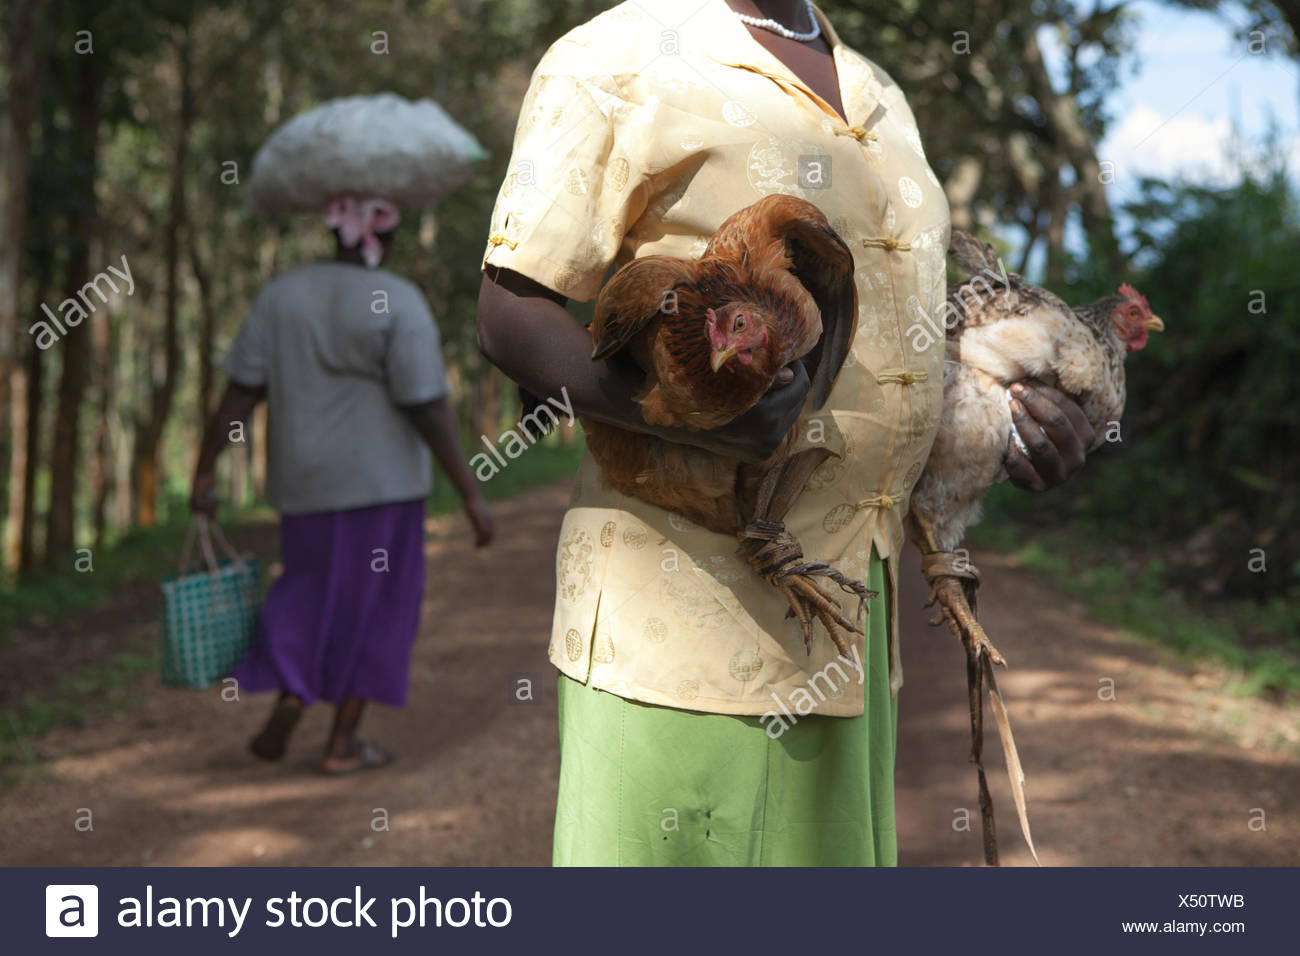 A woman stands in a path and carries two hens while another woman carries items on her head. - Stock Image